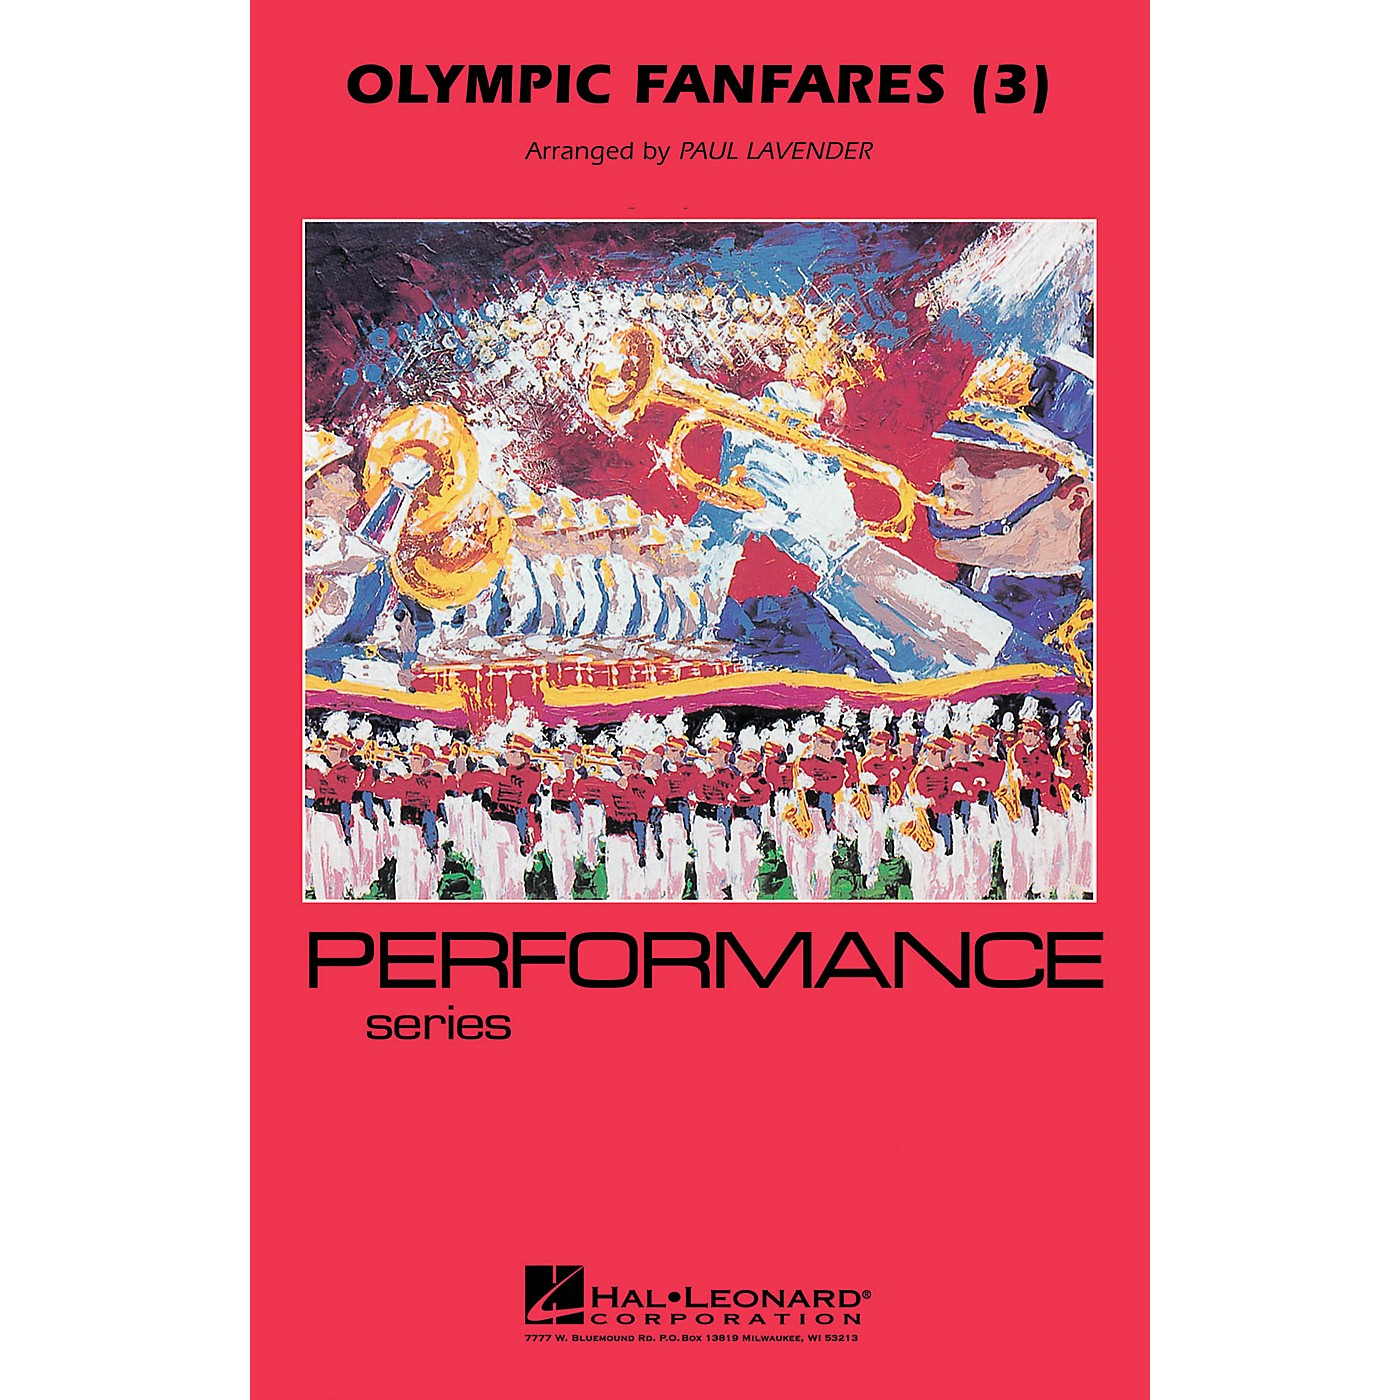 Hal Leonard Olympic Fanfares (3) Marching Band Level 3-4 Arranged by Paul Lavender thumbnail